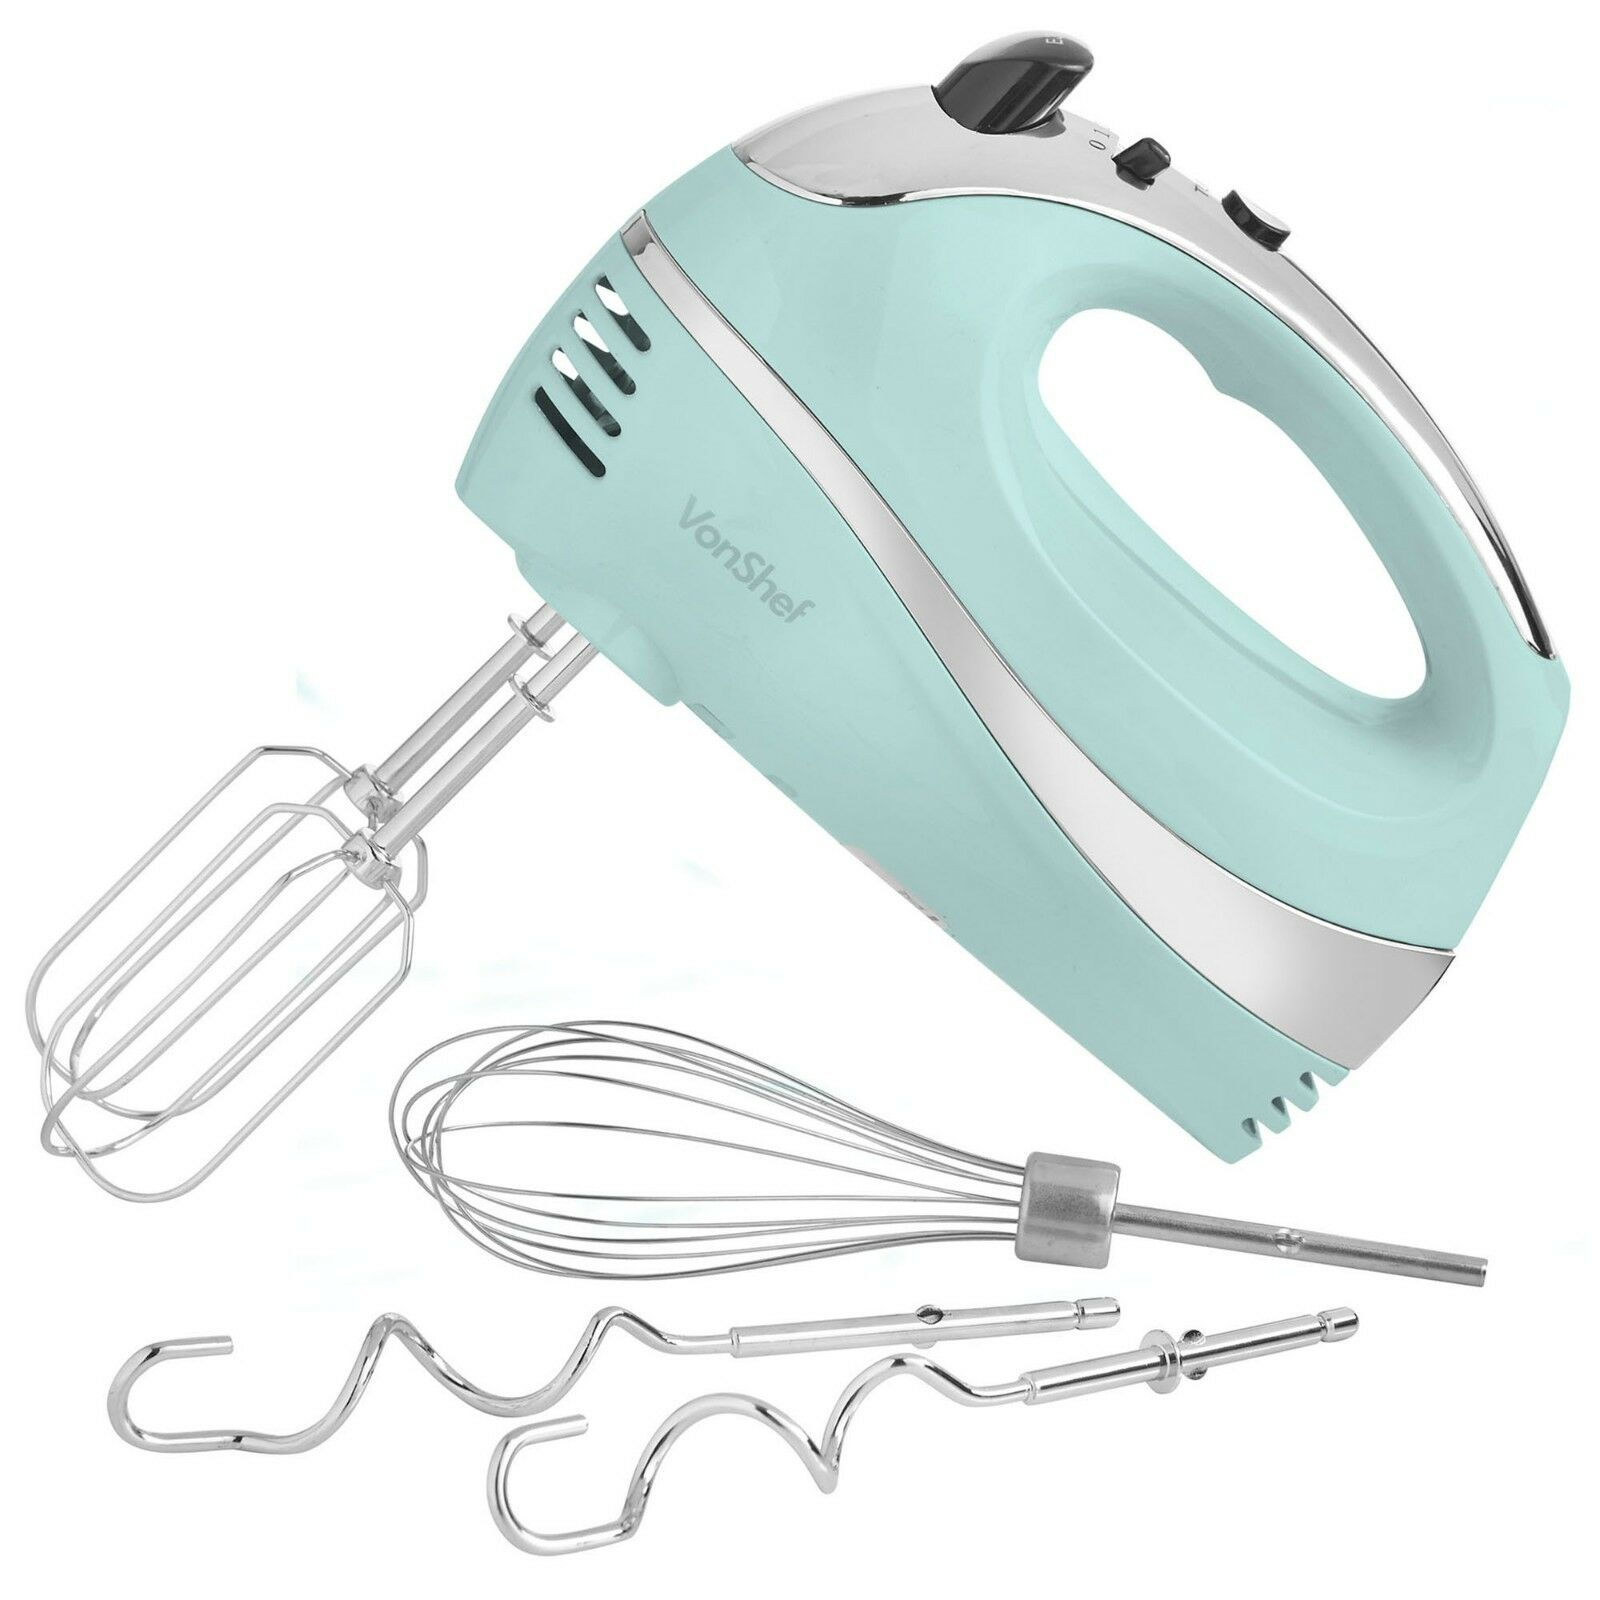 VonShef BLUE Electric Hand Mixer Whisk 6 Speed with Stainles